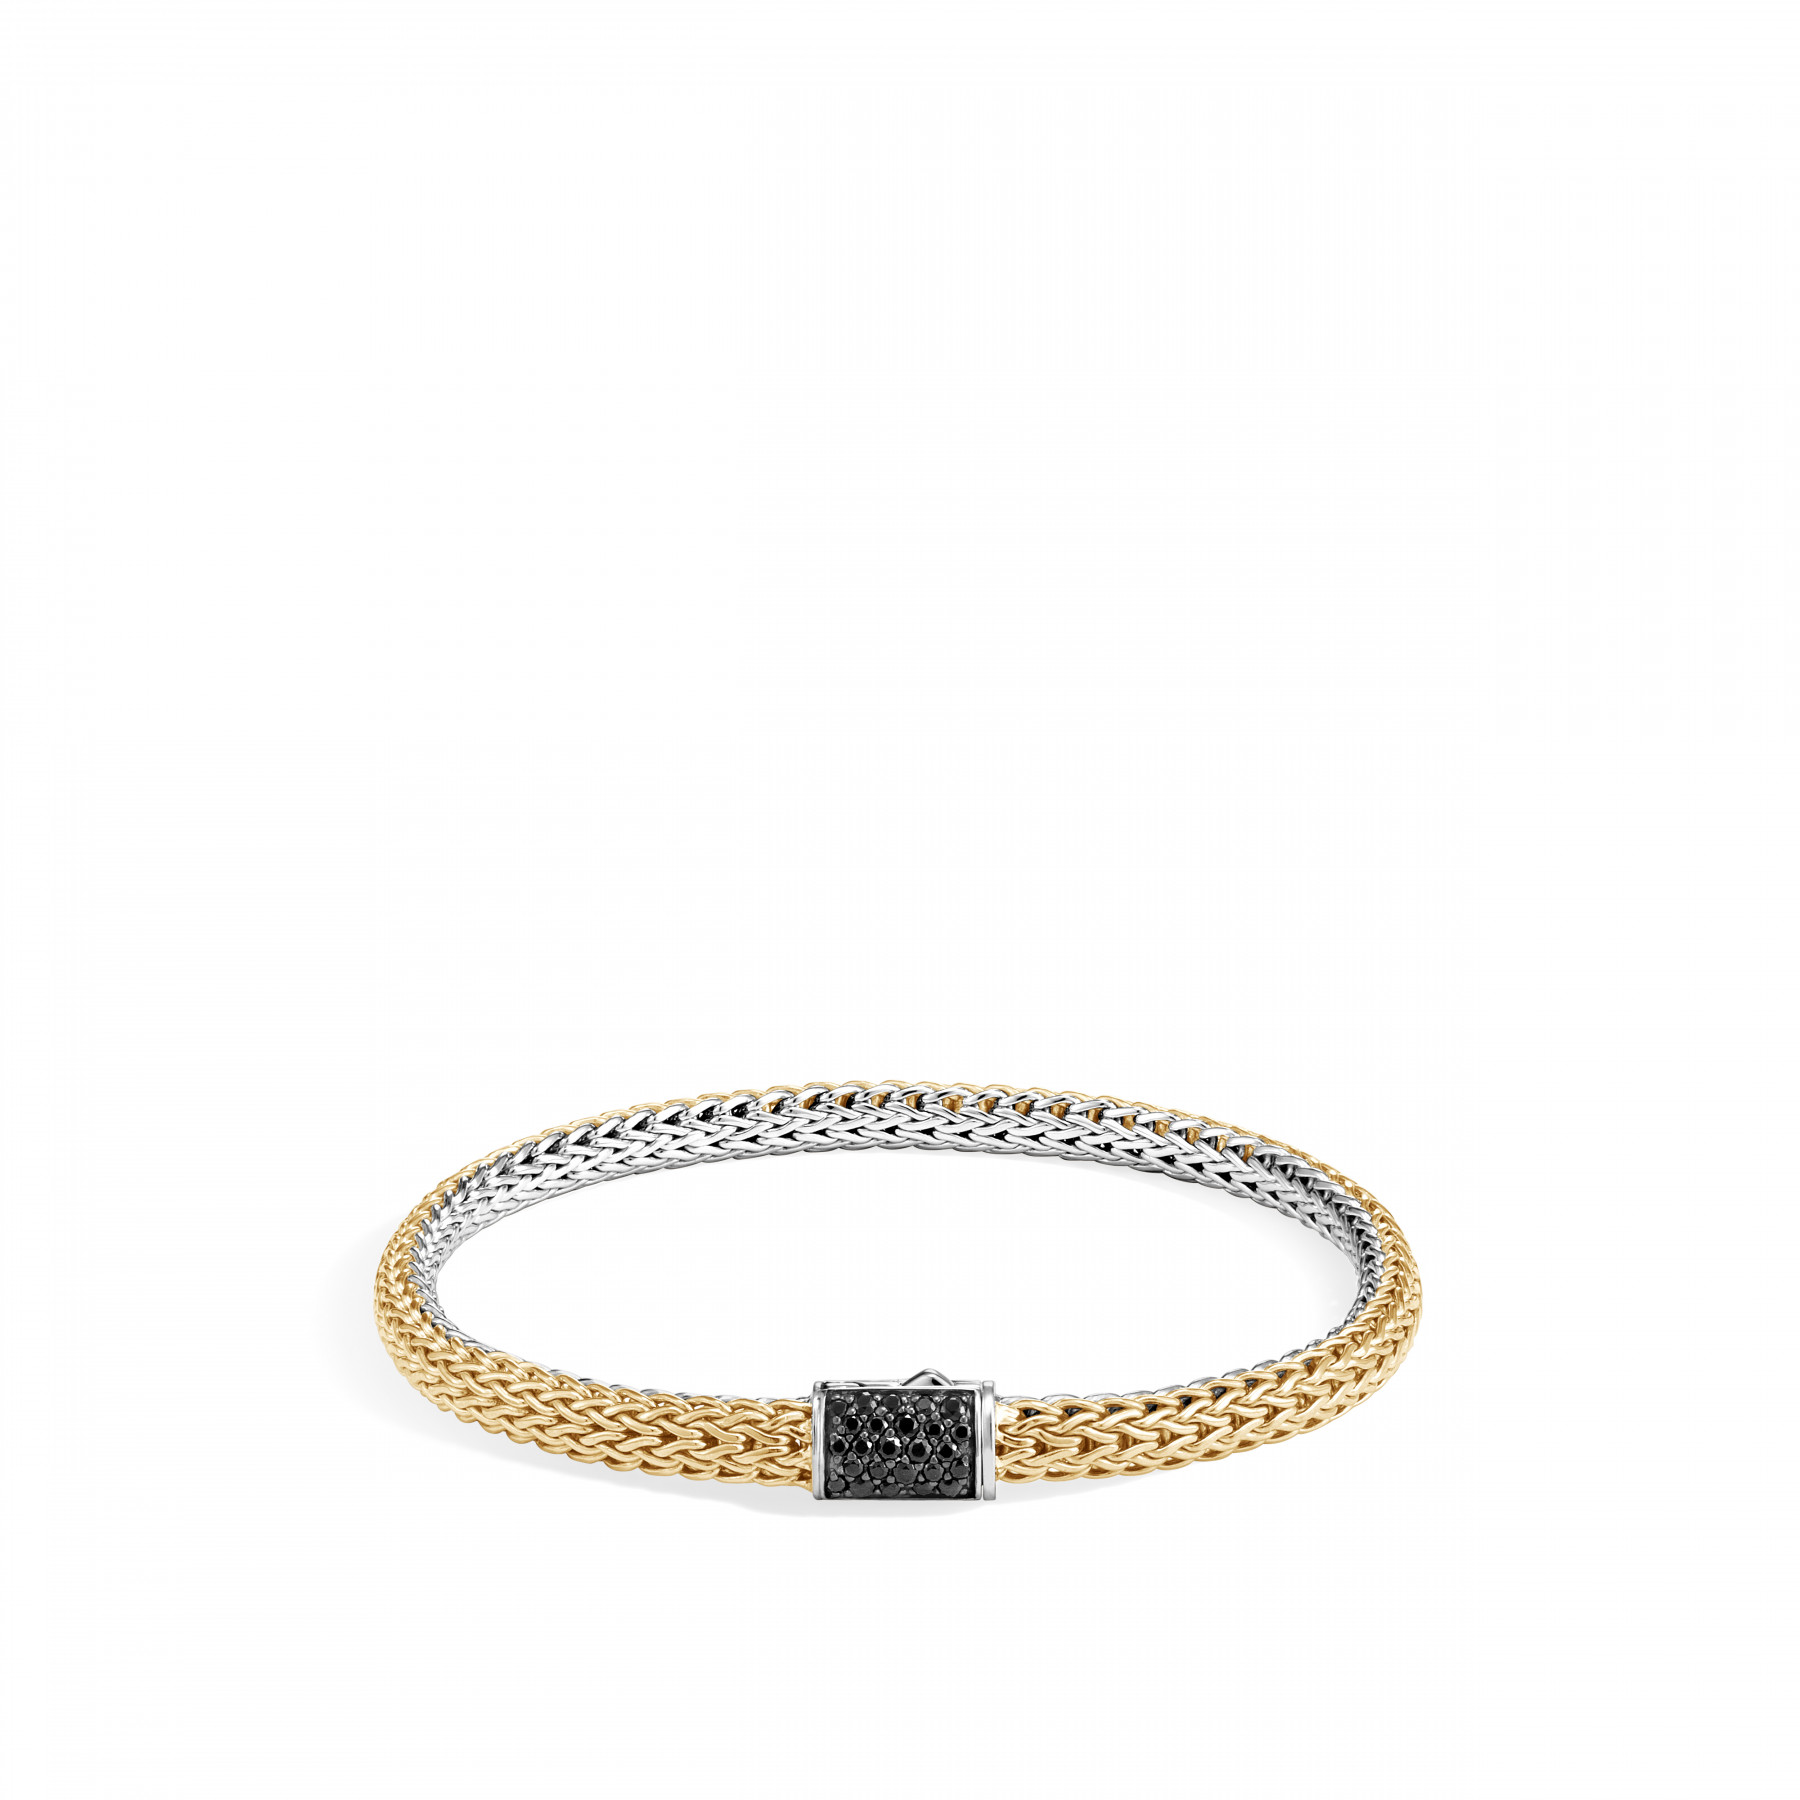 John Hardy Reversible 5mm Sapphire and Diamond Bracelet in Silver and 18K gold image